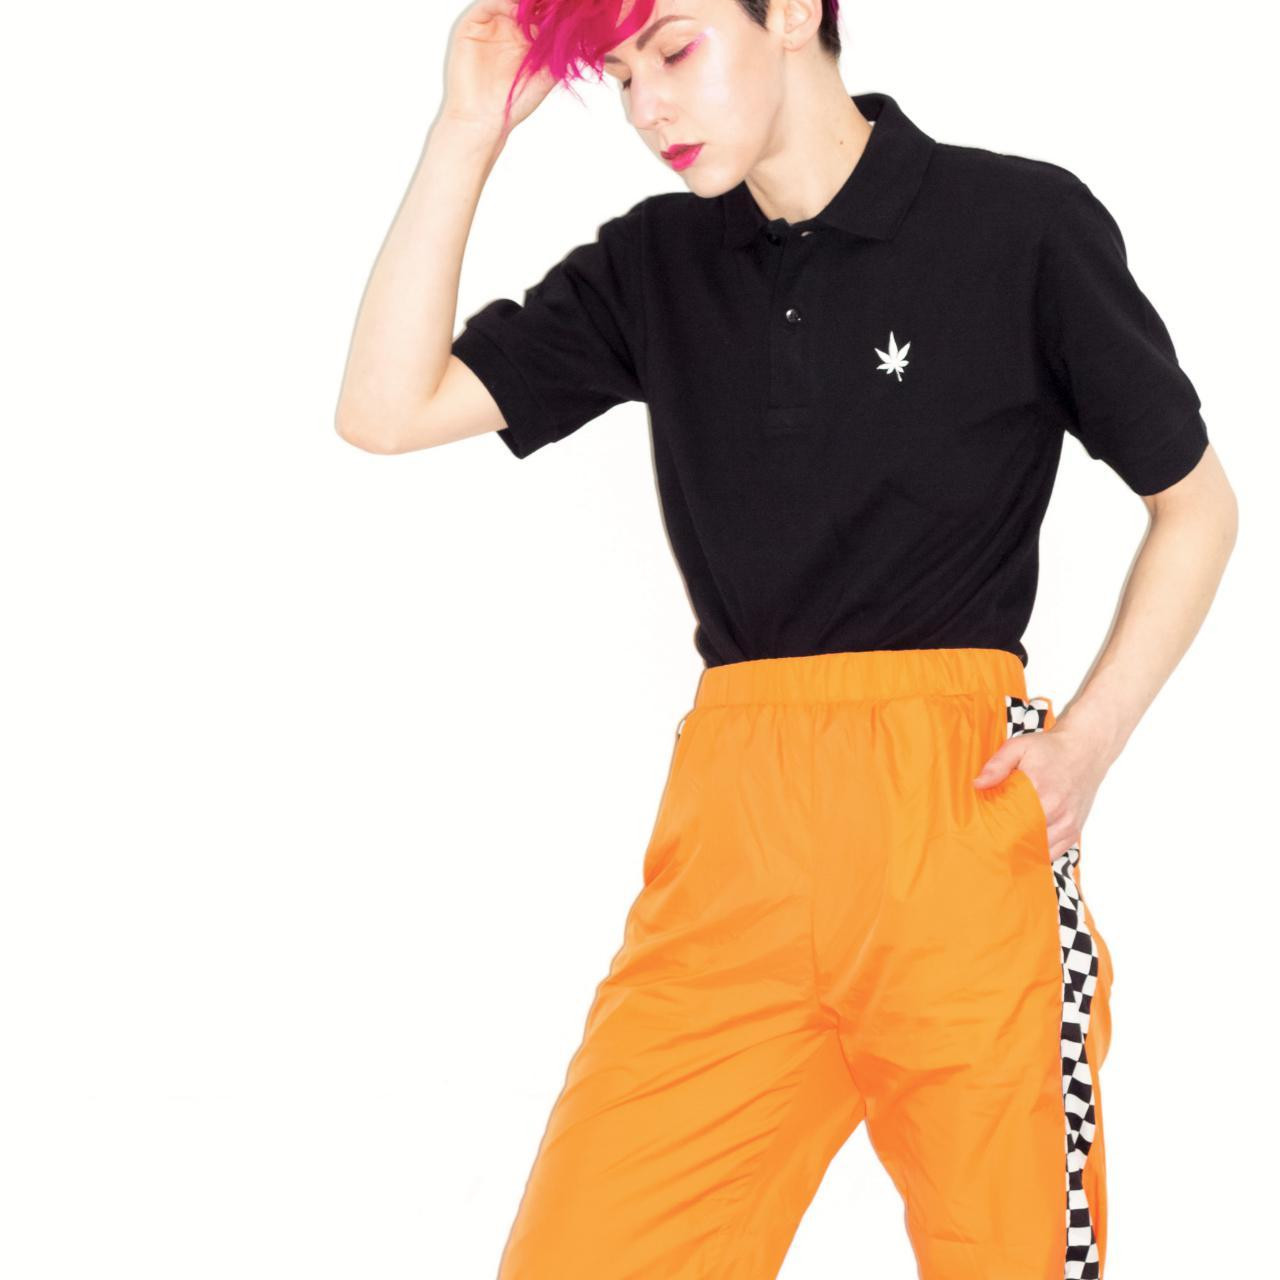 Product Image 1 - Here is a black polo-style,